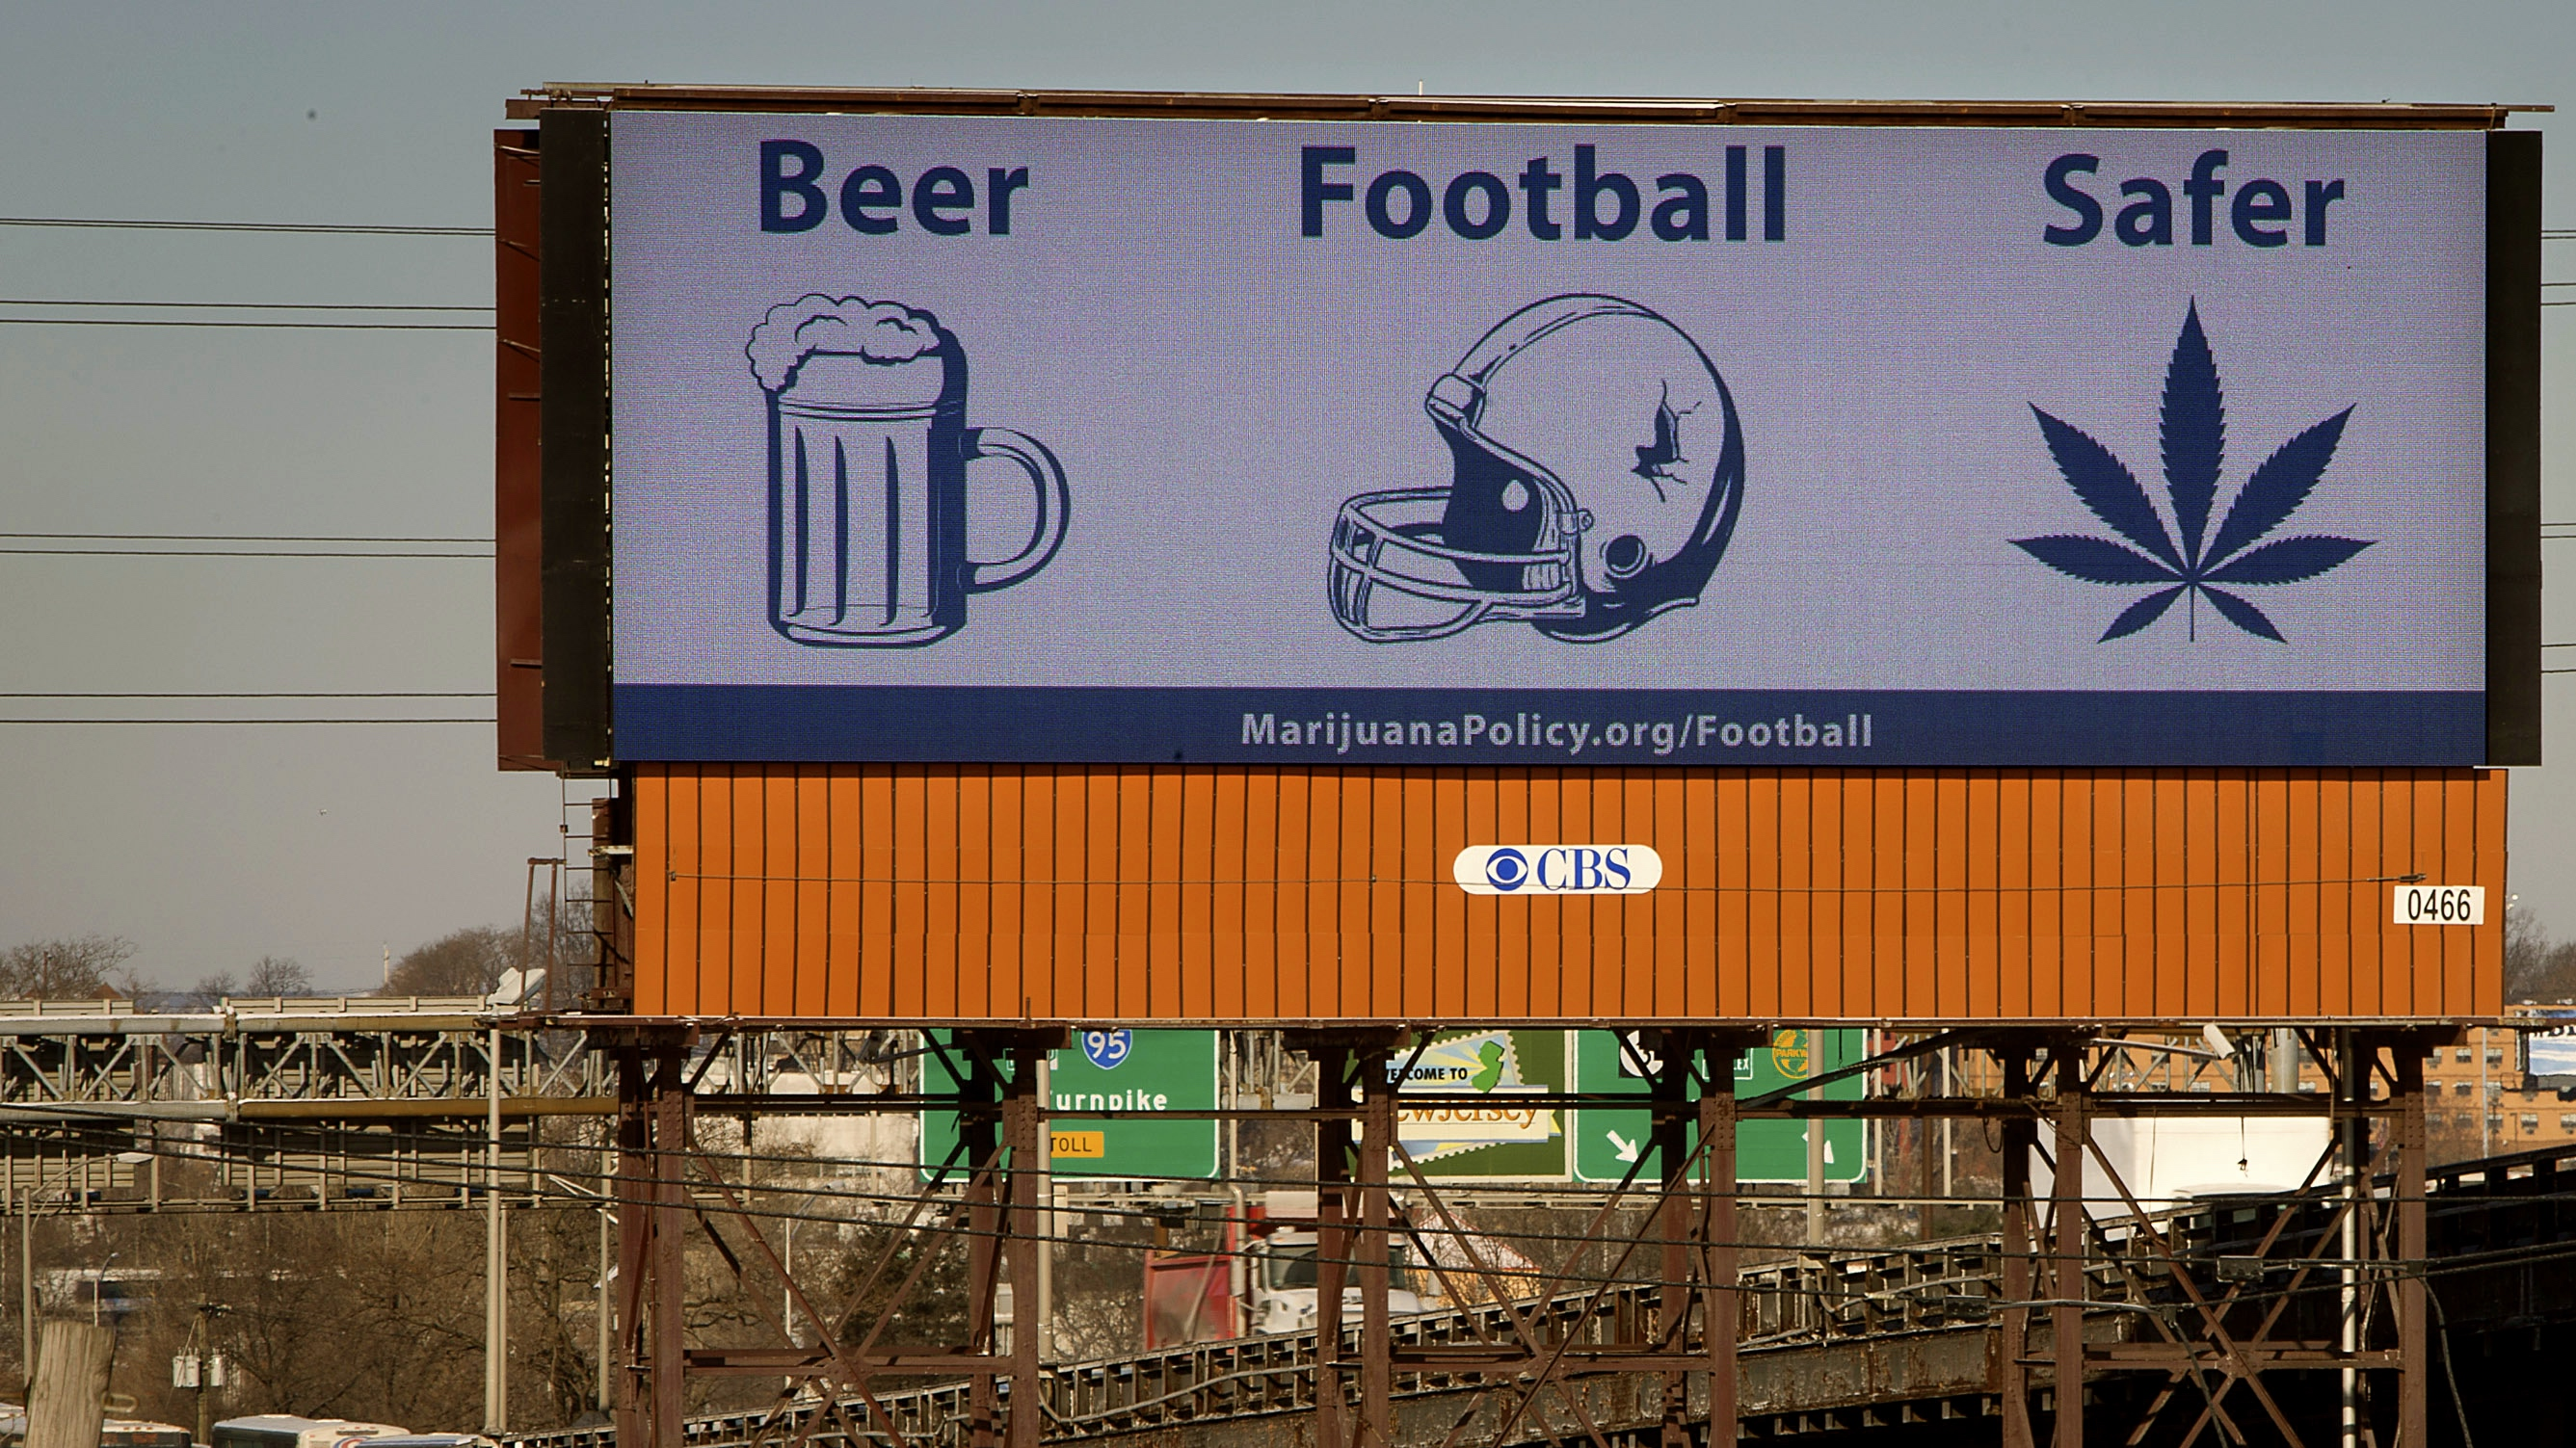 Beer, football, and weed.